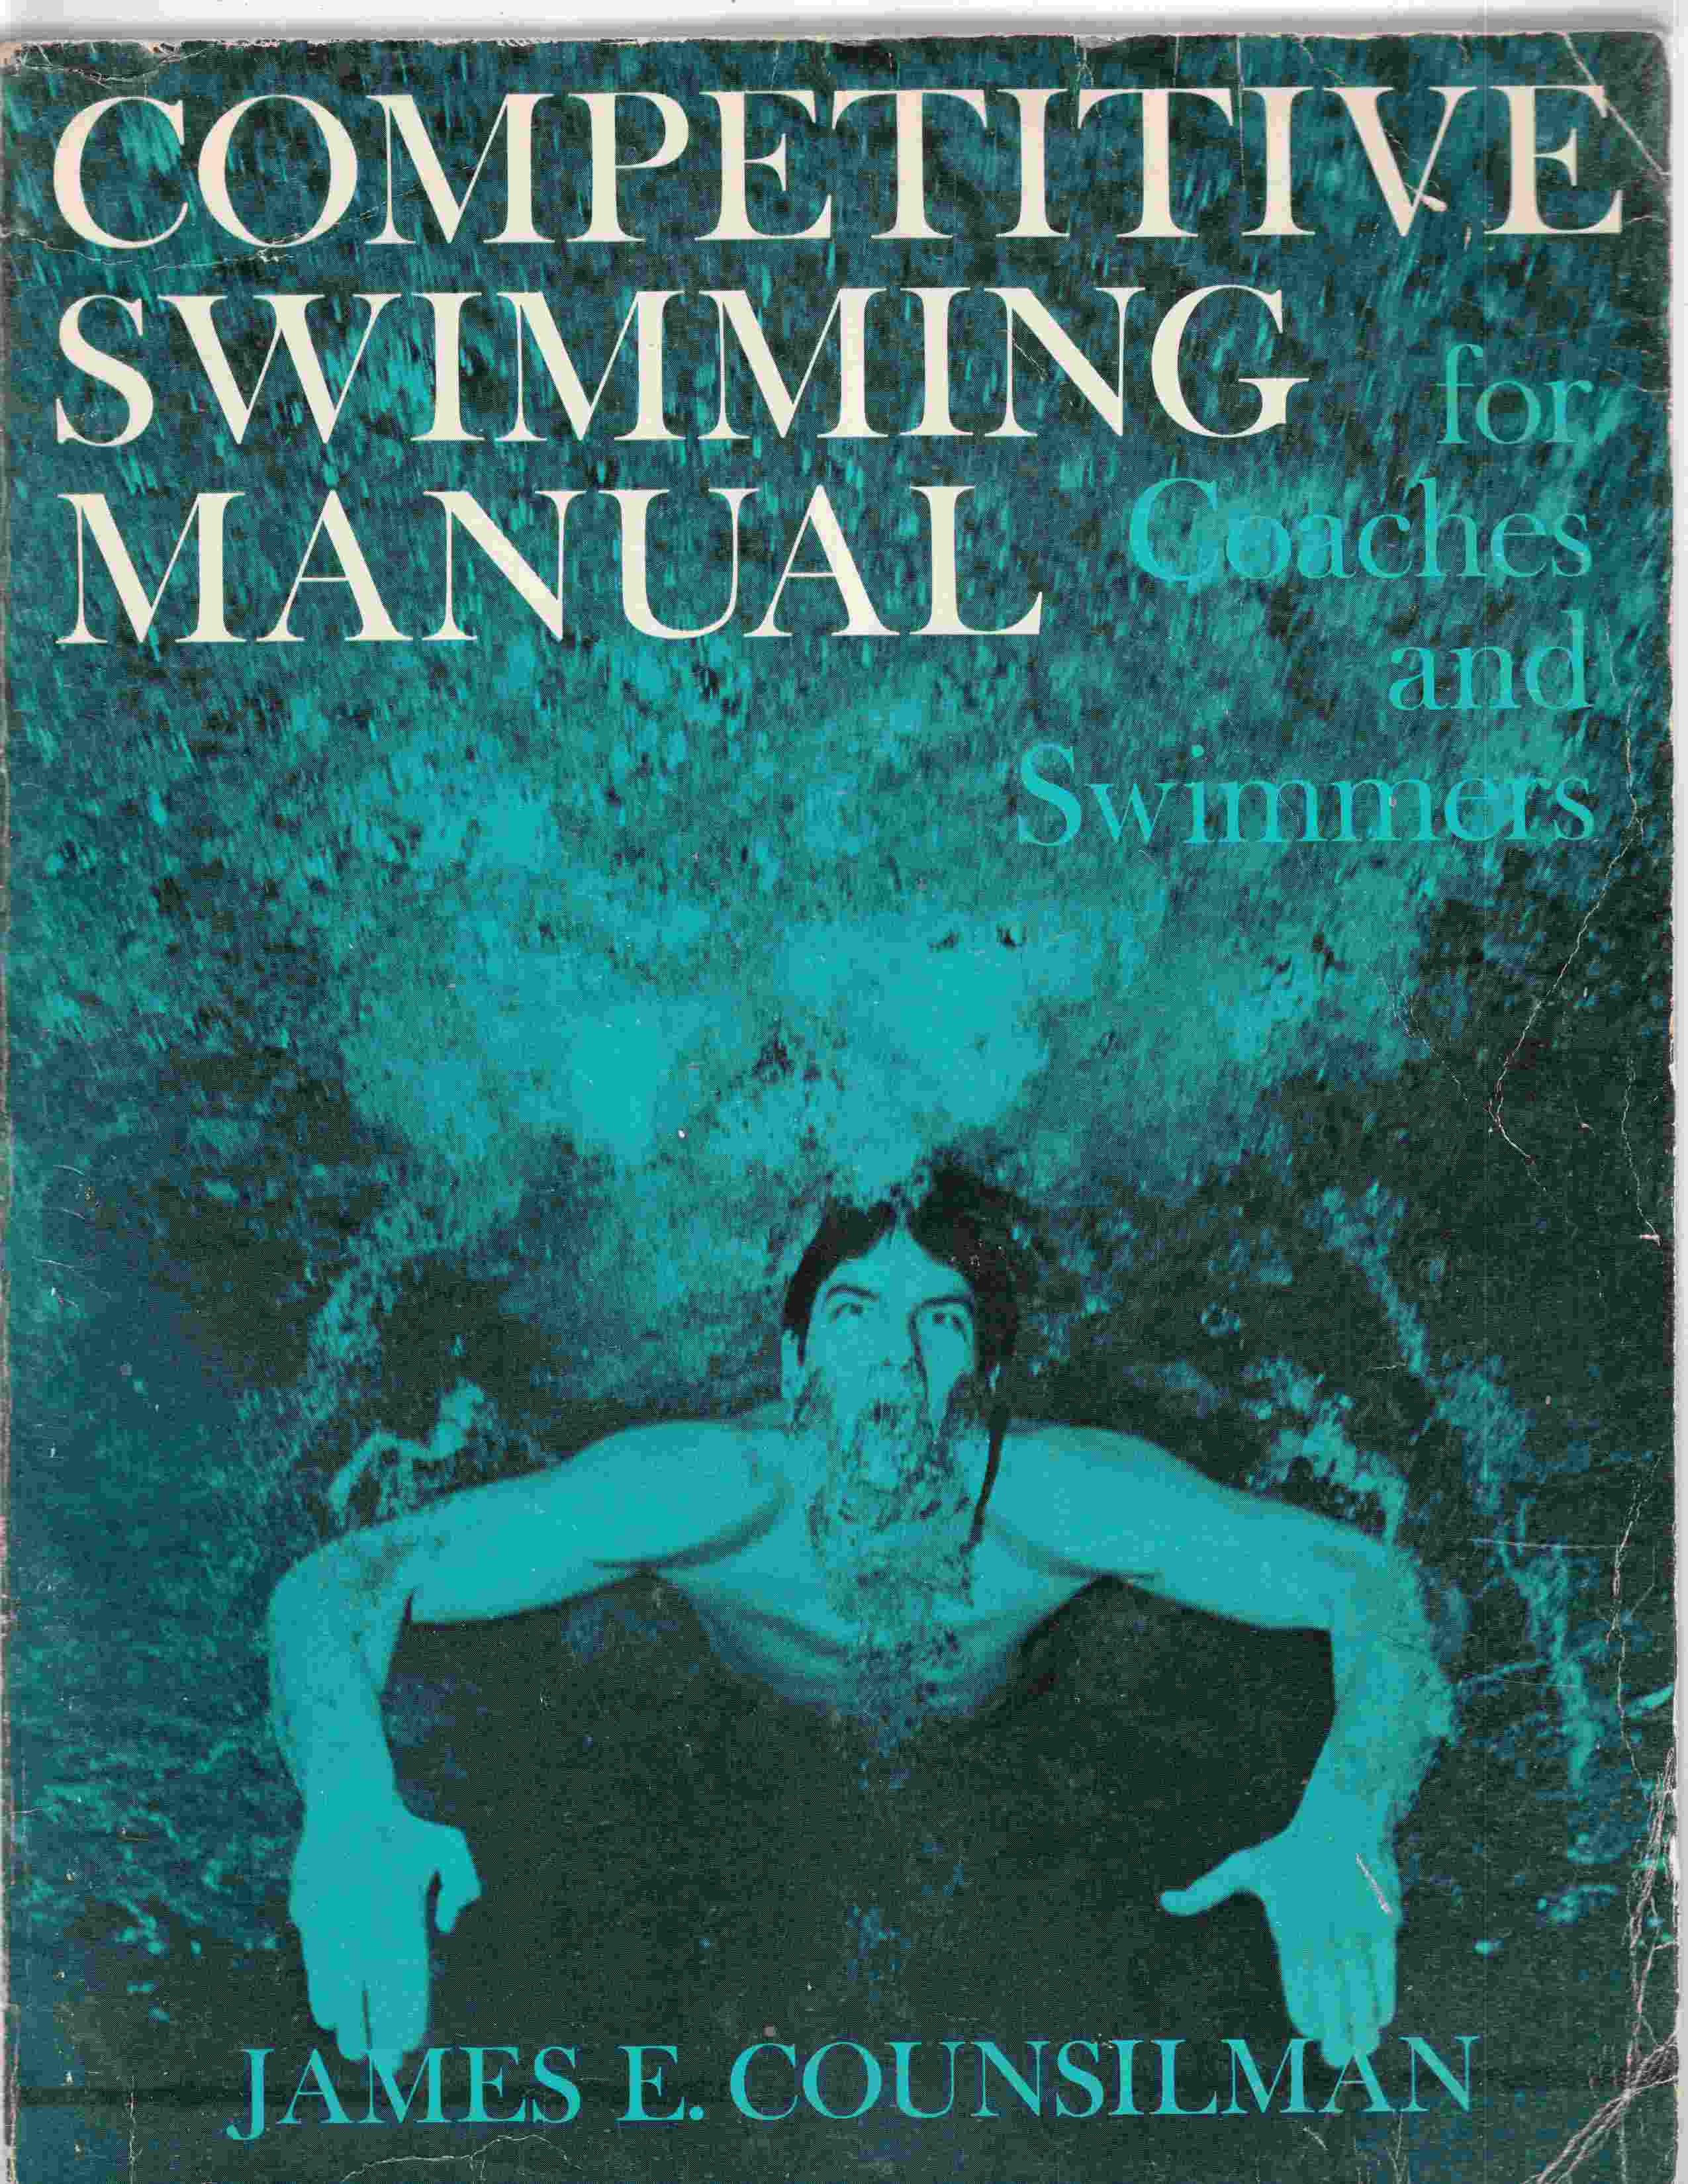 Image for Competitive Swimming Manual for Coaches and Swimmers